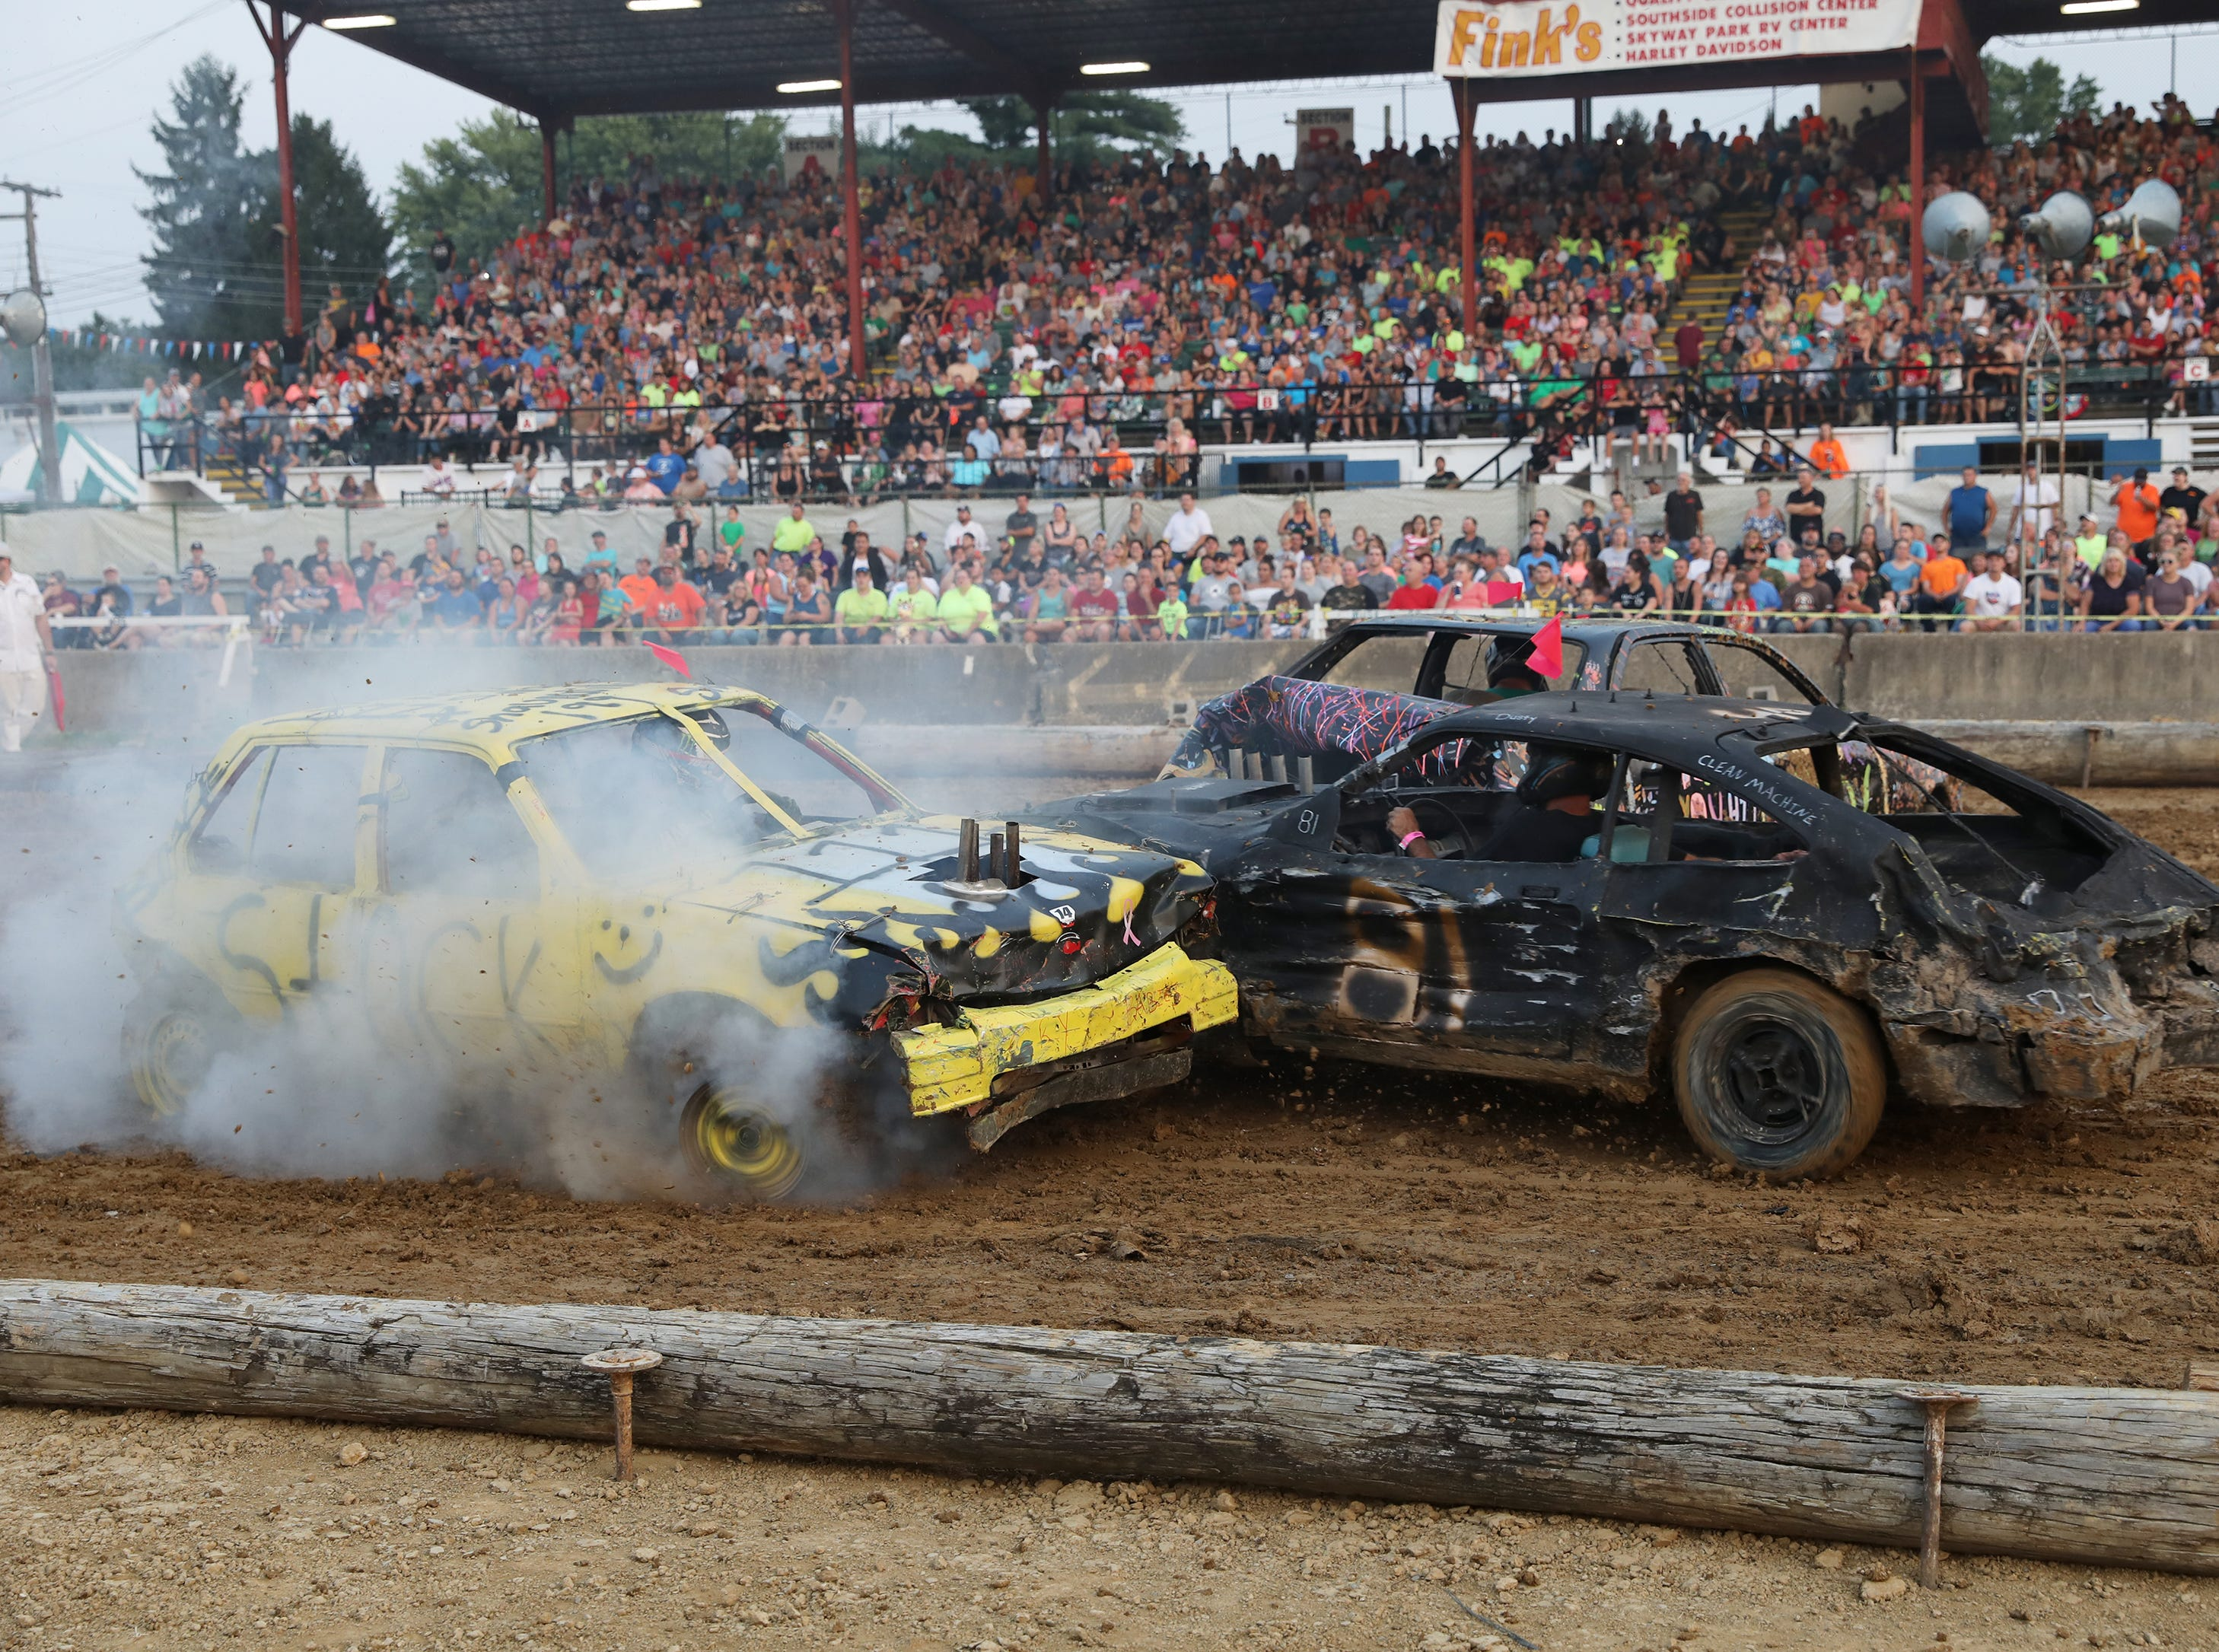 Dusty Dady and Shawn Savage collide during the Sarge and Sons Demolition Derby at the Muskingum County Fair on Tuesday.